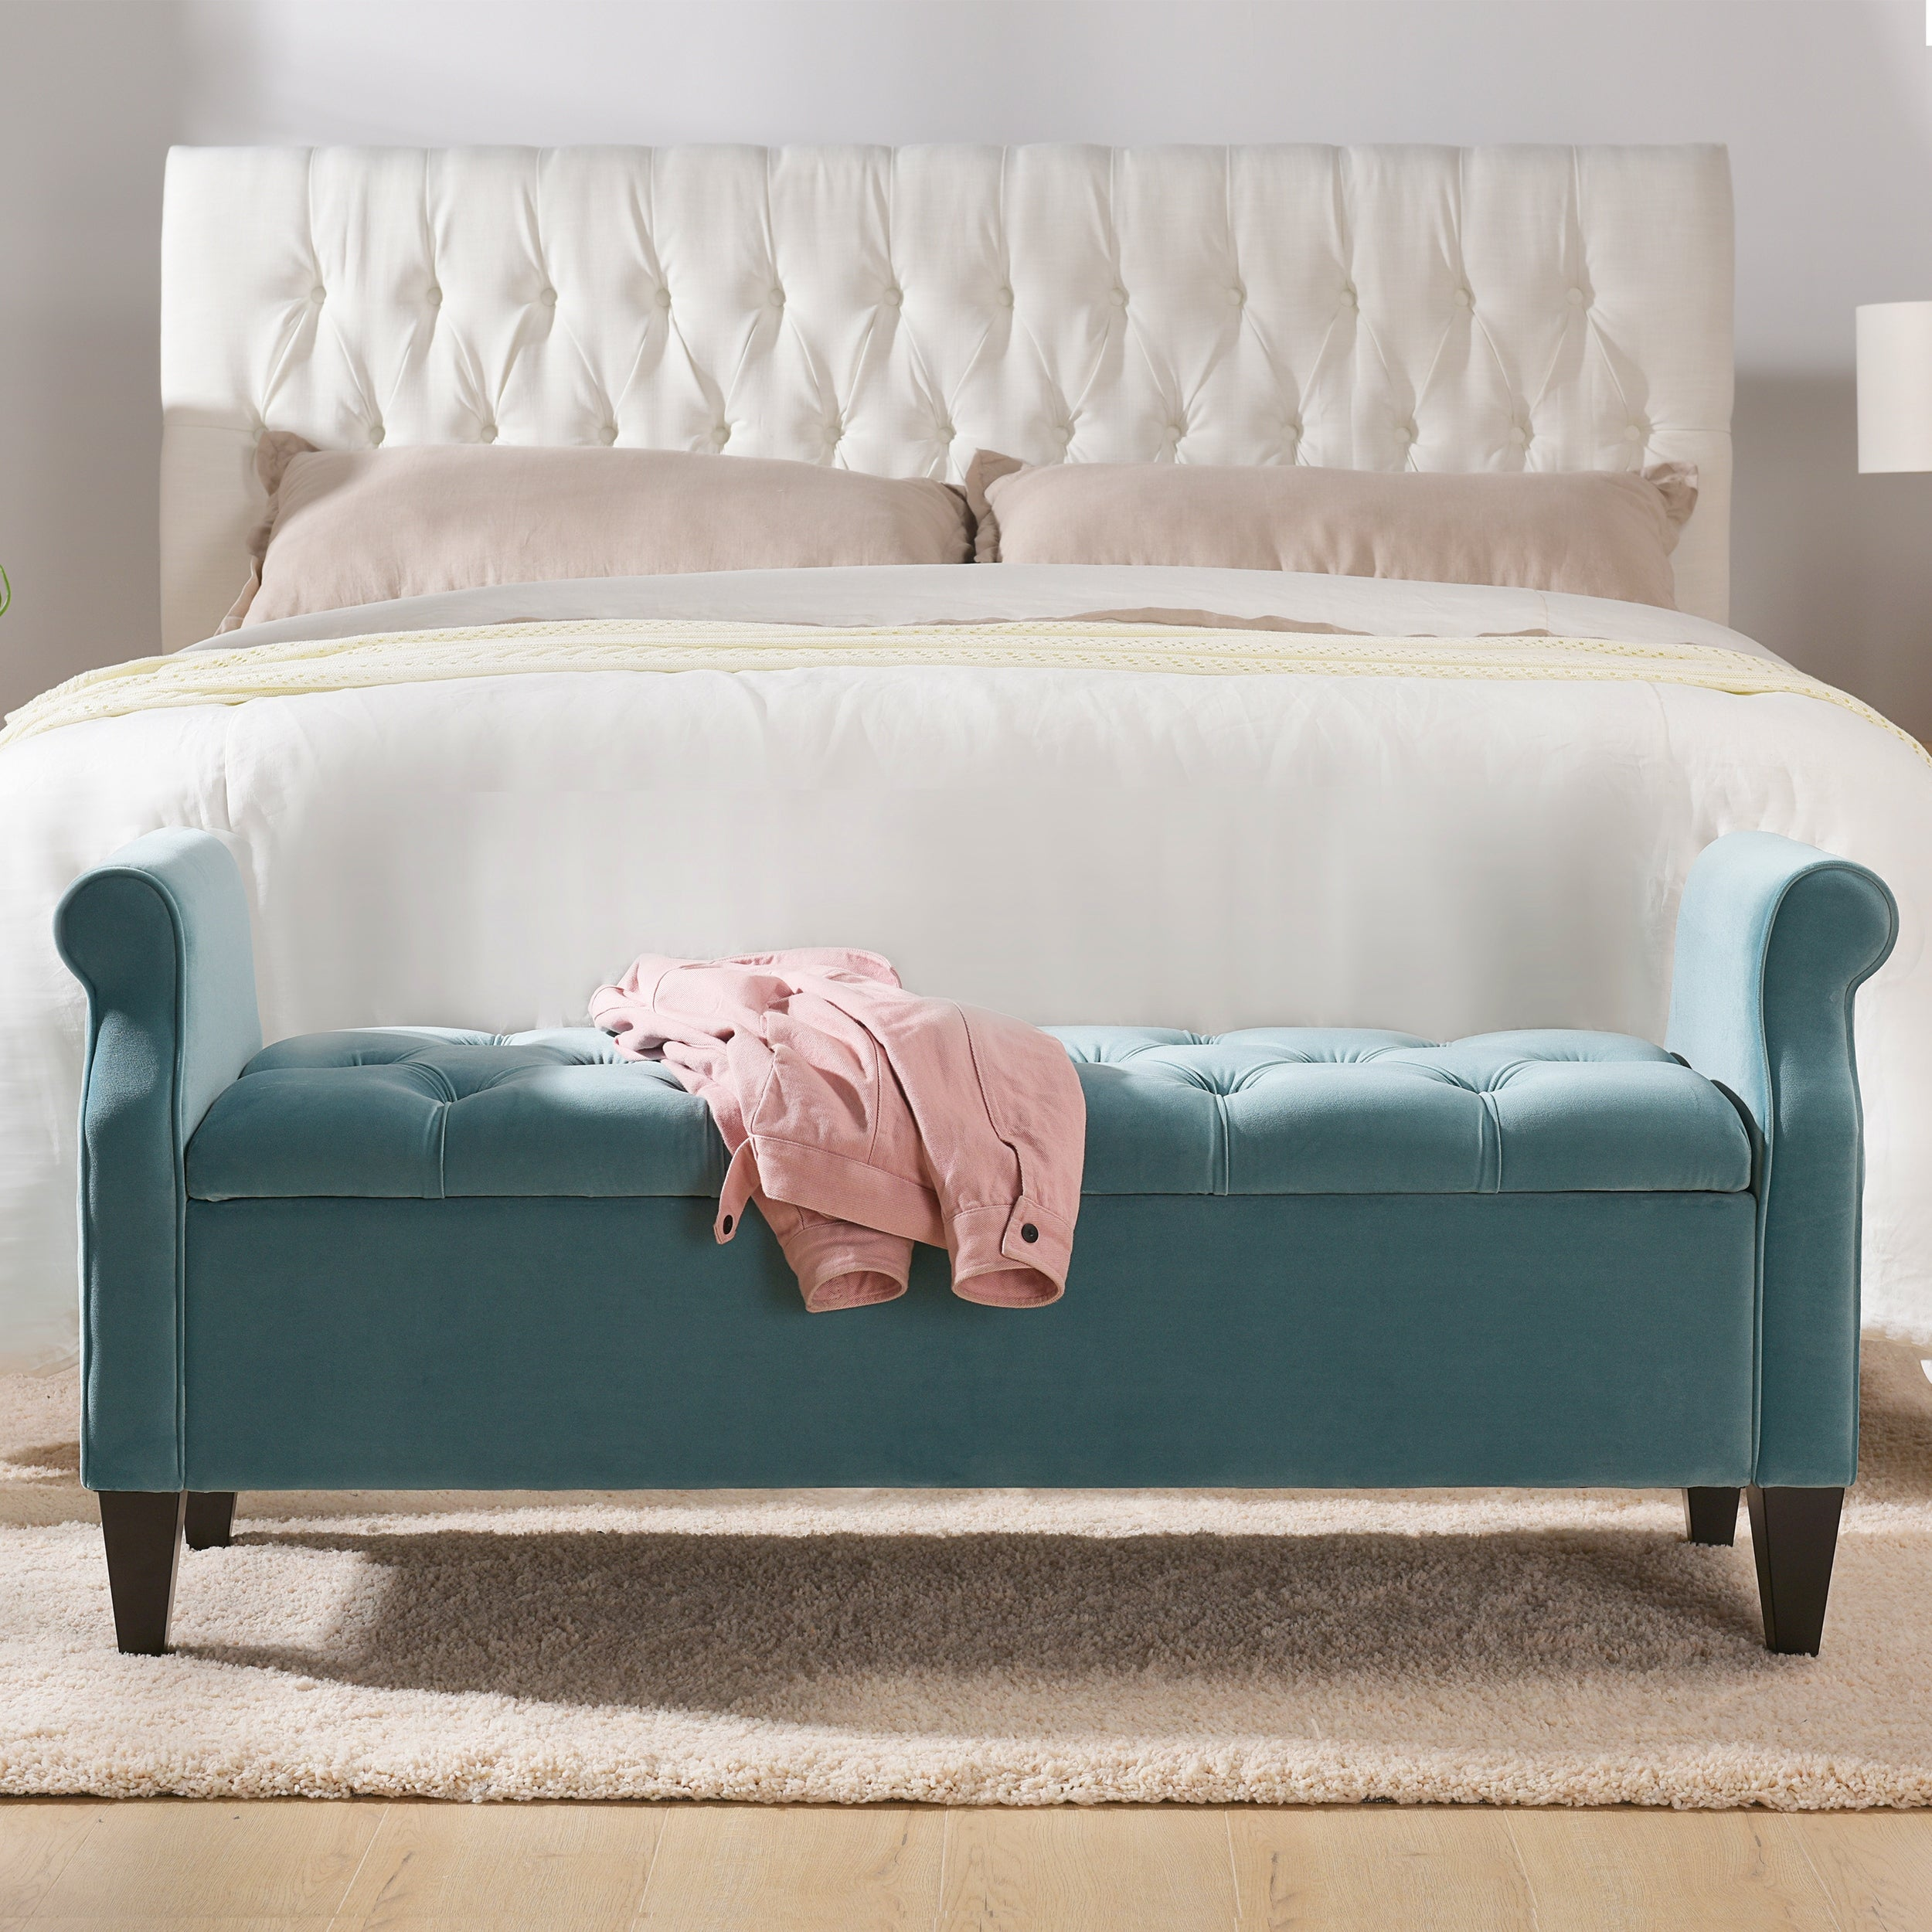 Copper Grove Amalfi Tufted Storage Bench With Rolled Arms On Sale Overstock 28387222